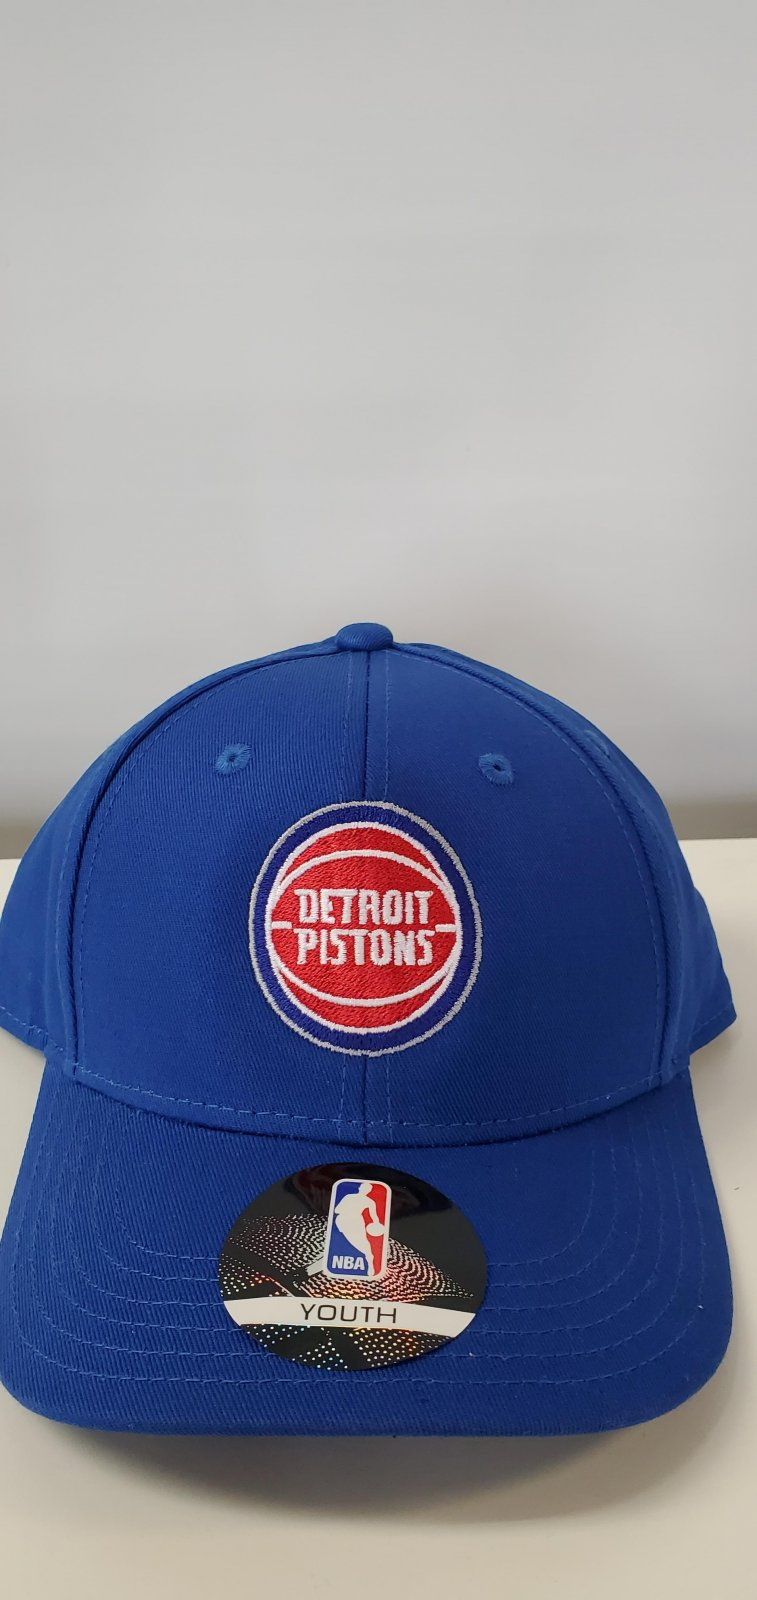 Detroit Pistons Structured Youth Adj Hat